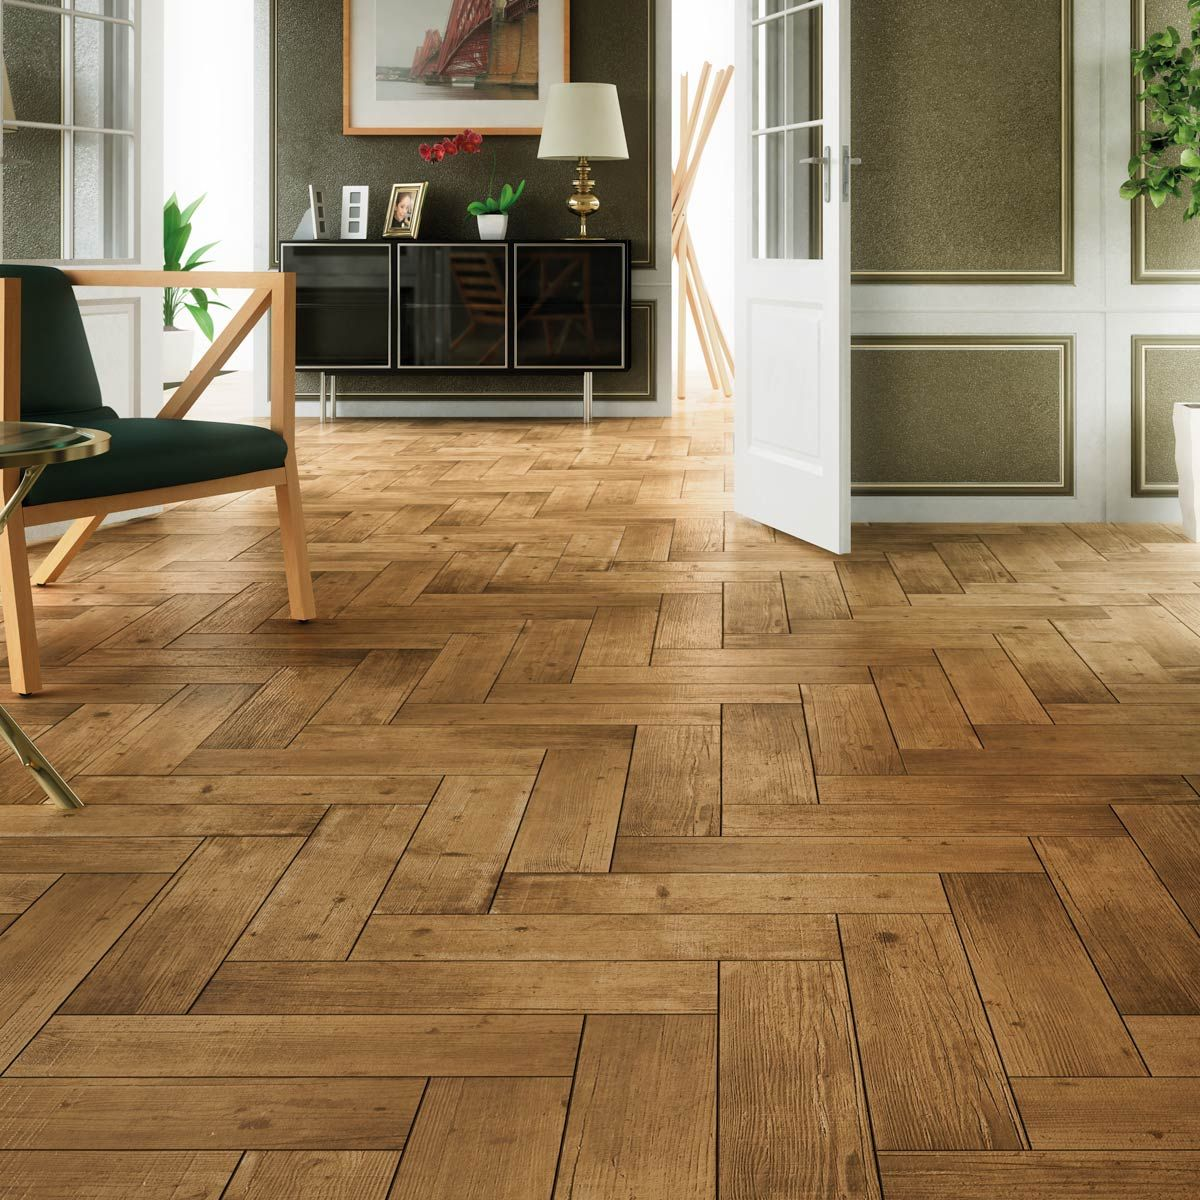 Porcelain Superstore Wood Look Porcelain Floor Tiles